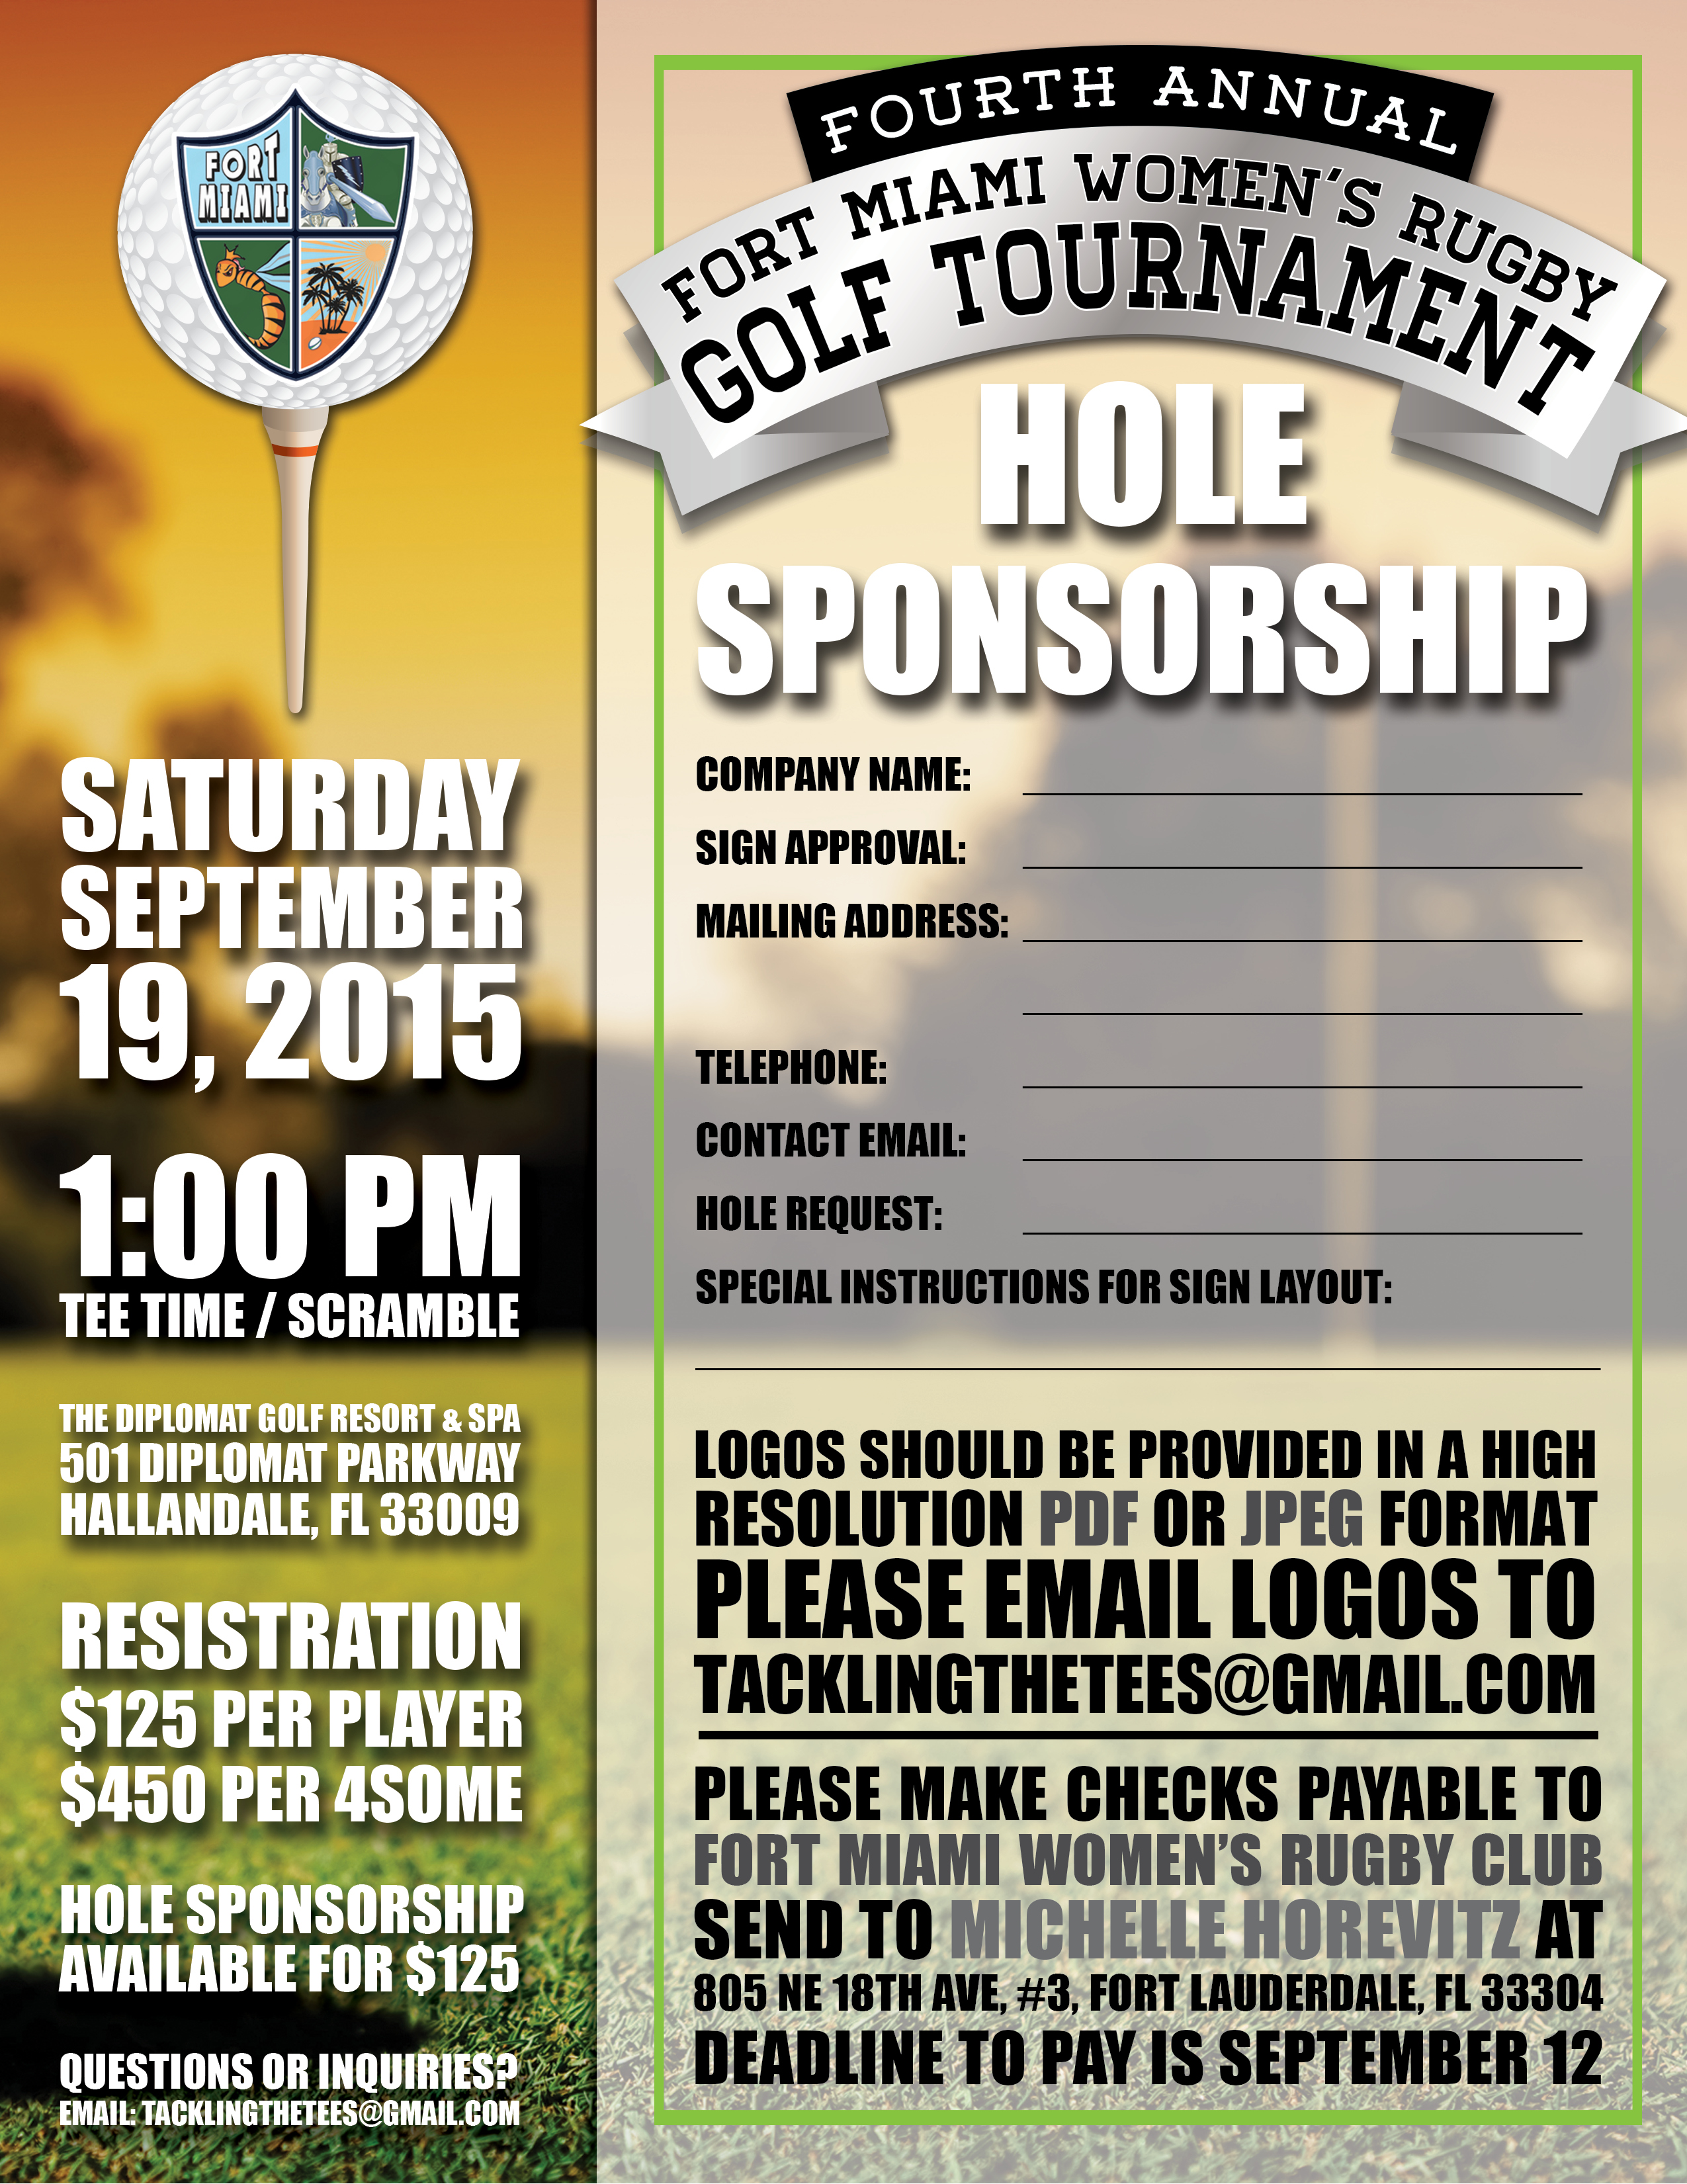 Golf tournament fort miami hole sponsorship form thecheapjerseys Image collections